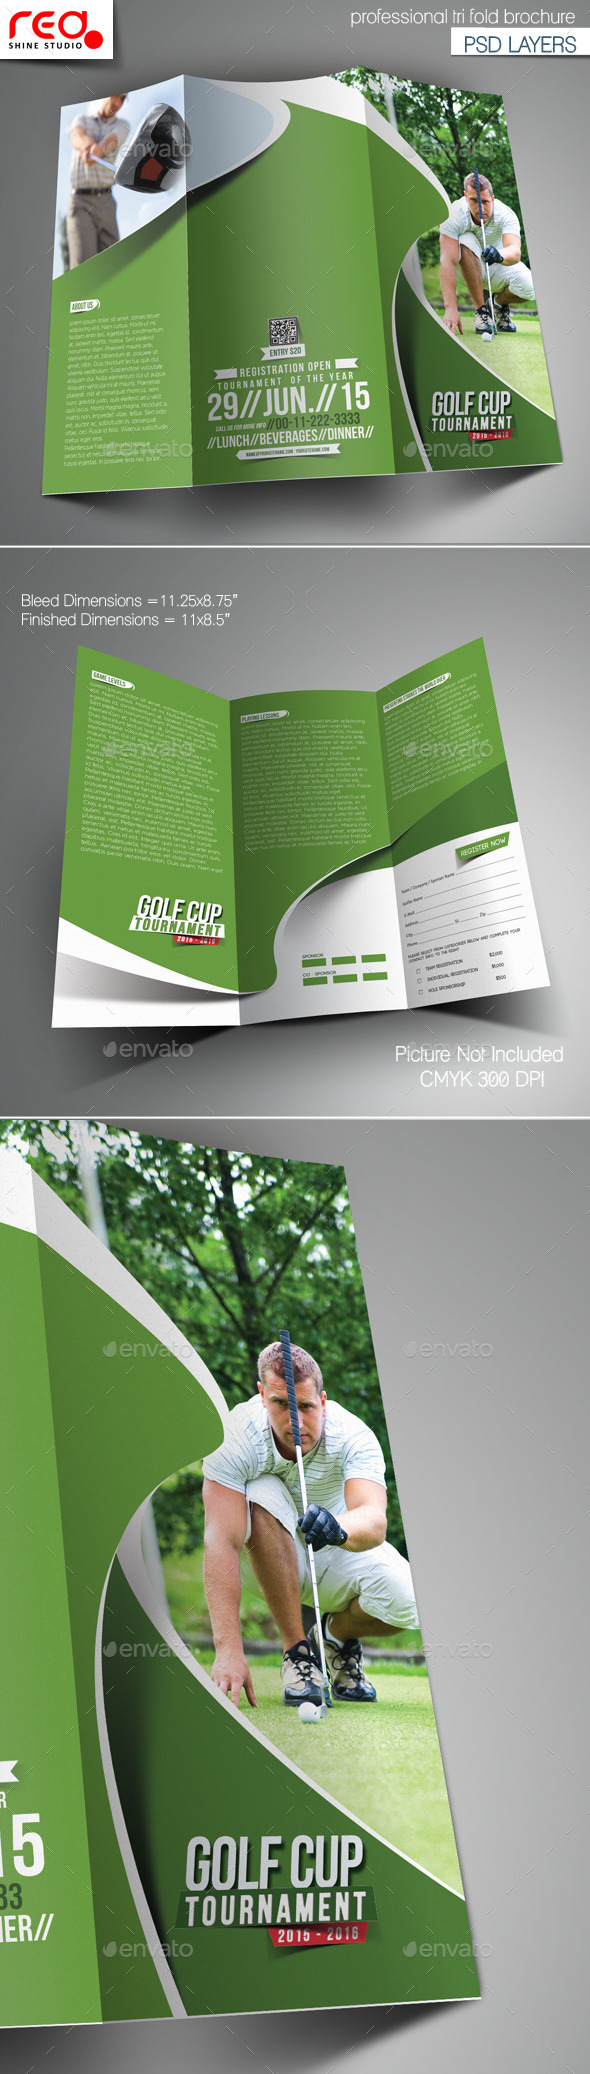 GraphicRiver Golf Tournament Trifold Brochure Template 10916831